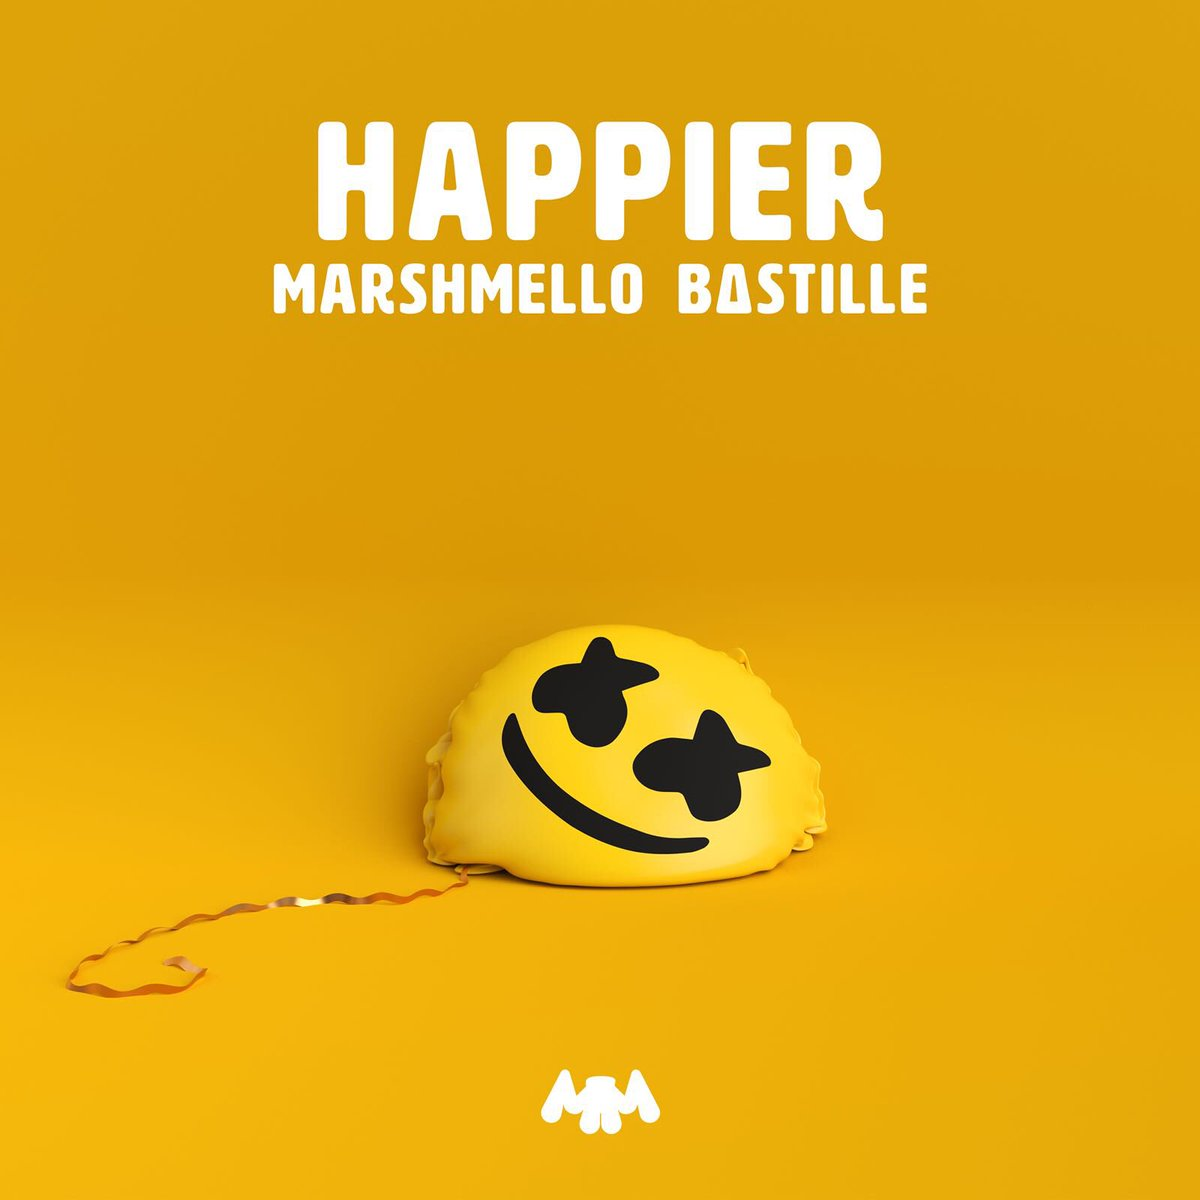 Happier Marshmello Bastille Single Art